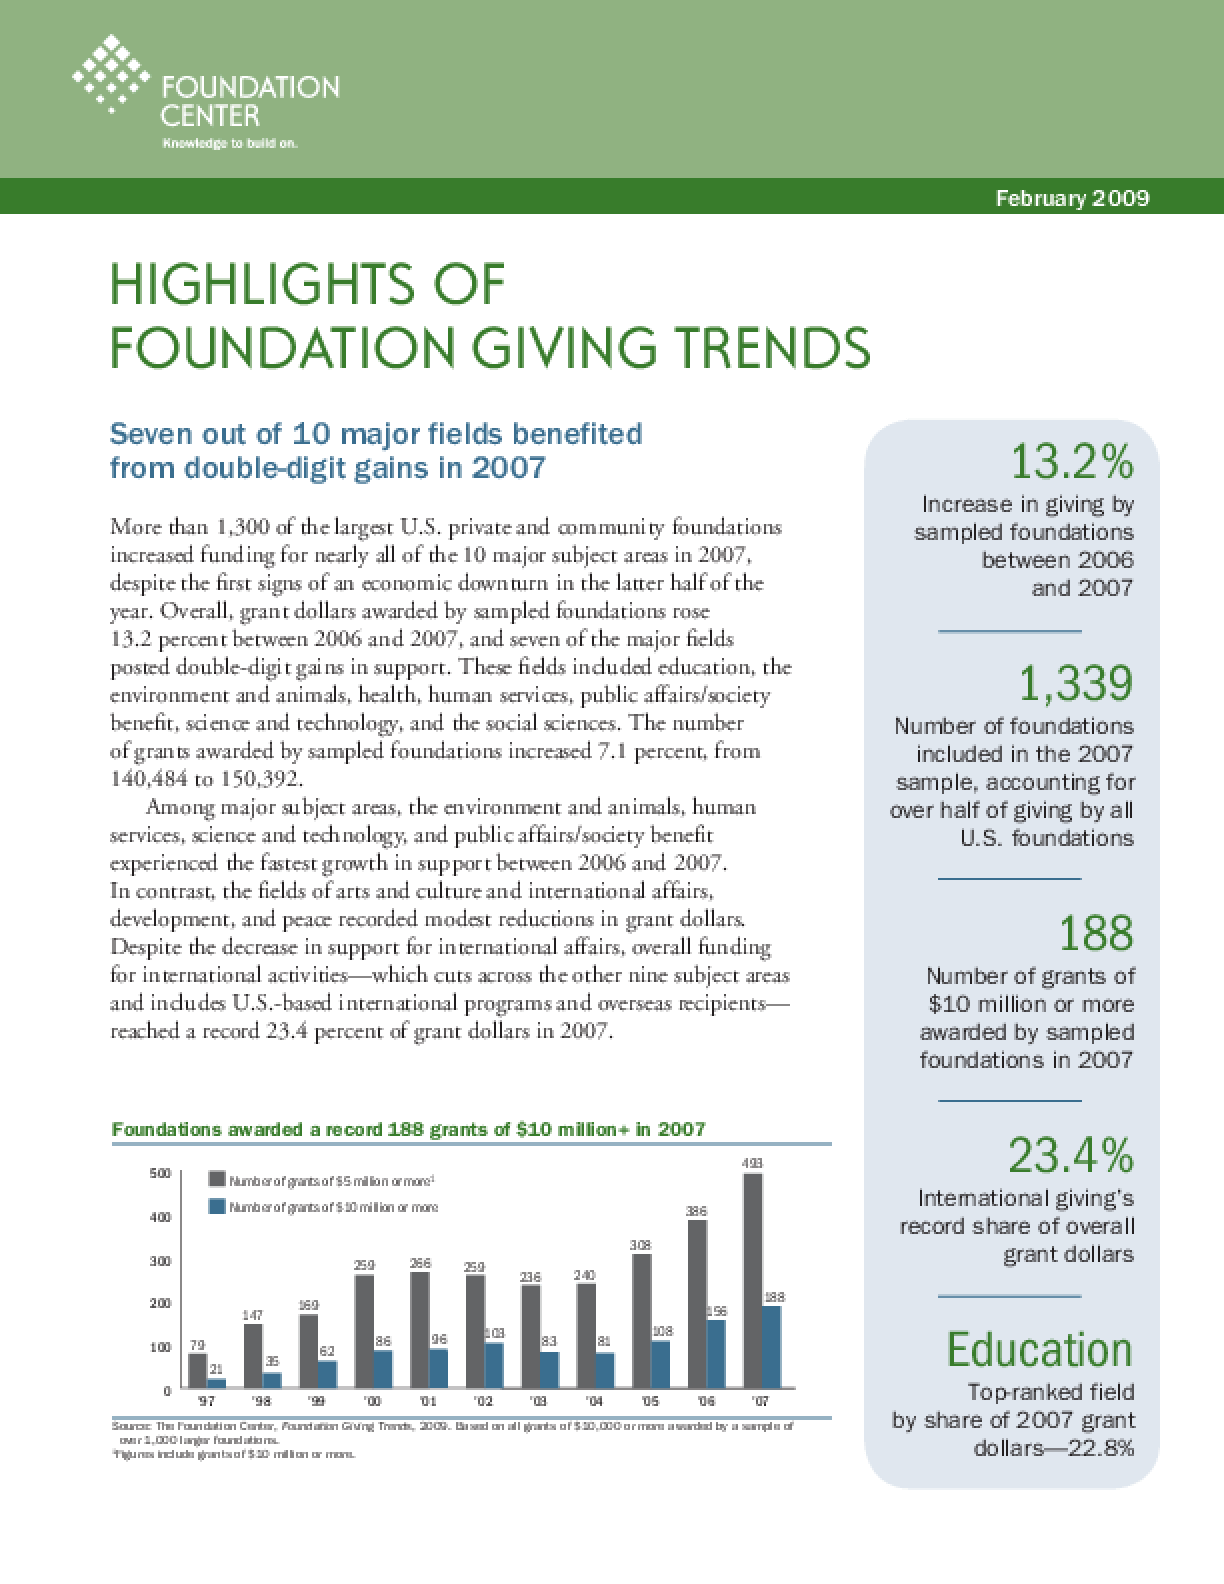 Foundations Today: Foundation Giving Trends, 2009 edition (Highlights)